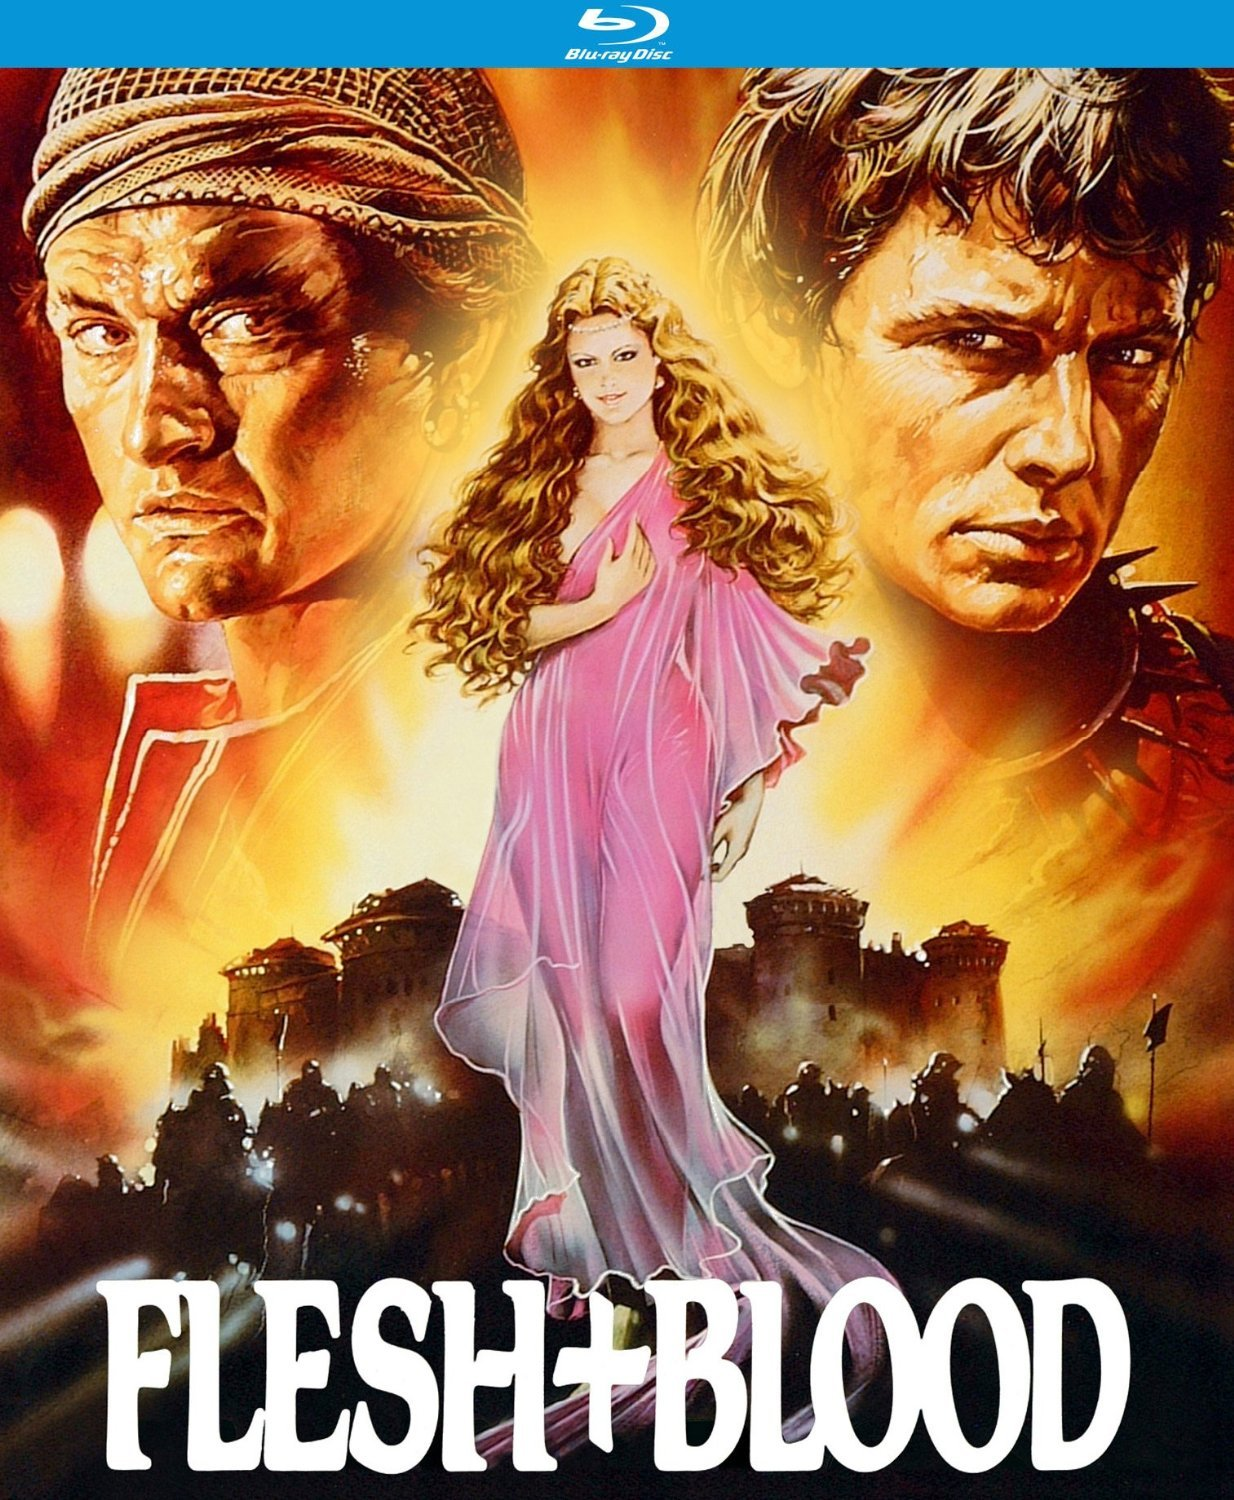 flesh + blood full movie